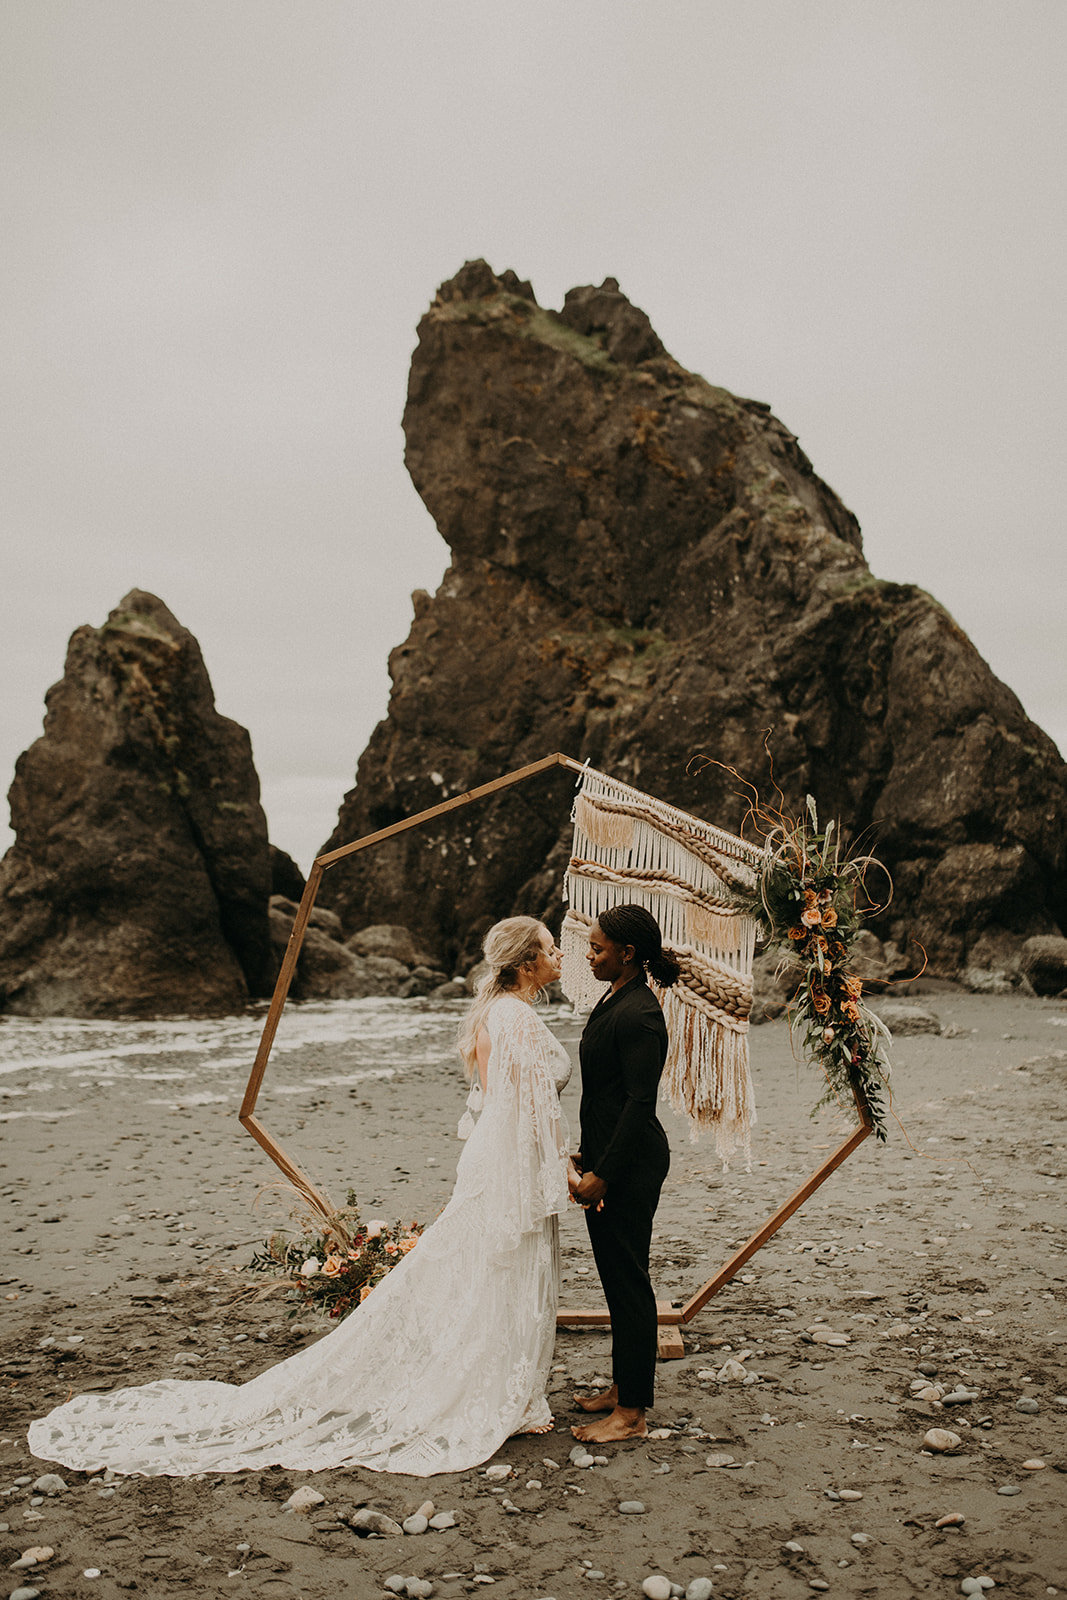 Ruby_Beach_Styled_Elopement_-_Run_Away_with_Me_Elopement_Collective_-_Kamra_Fuller_Photography_-_Ceremony-35